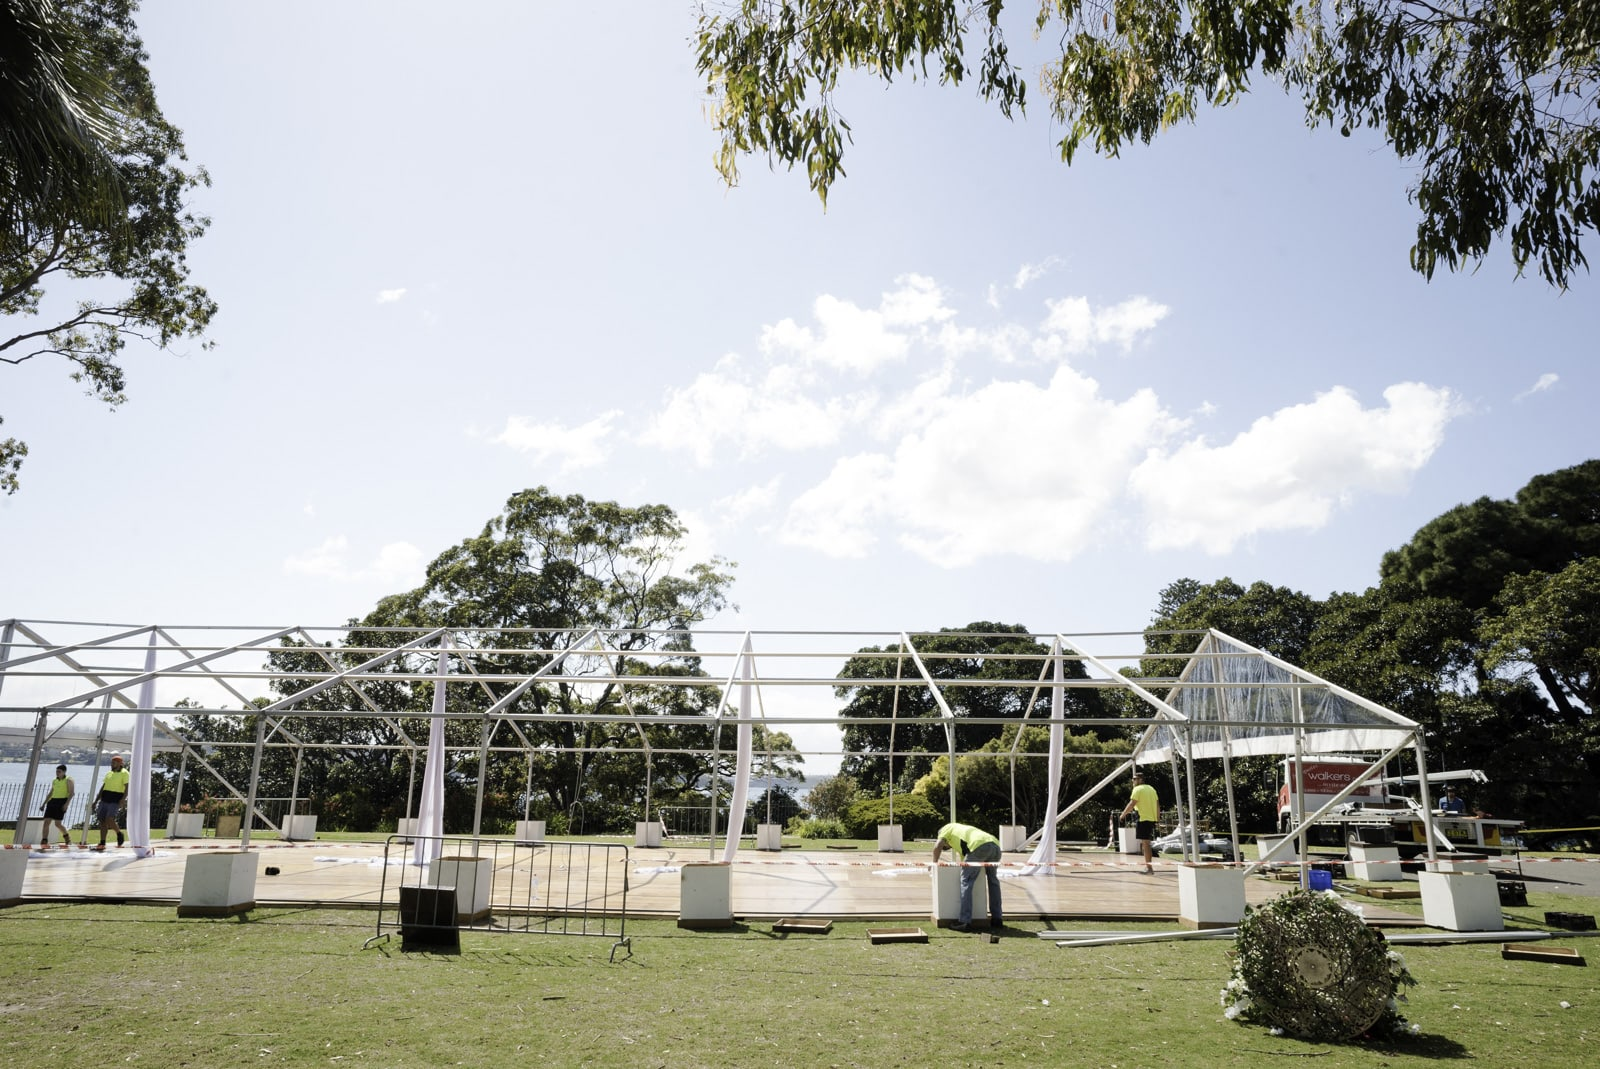 sydney-marquee-wedding-bennelong-lawn.jpg